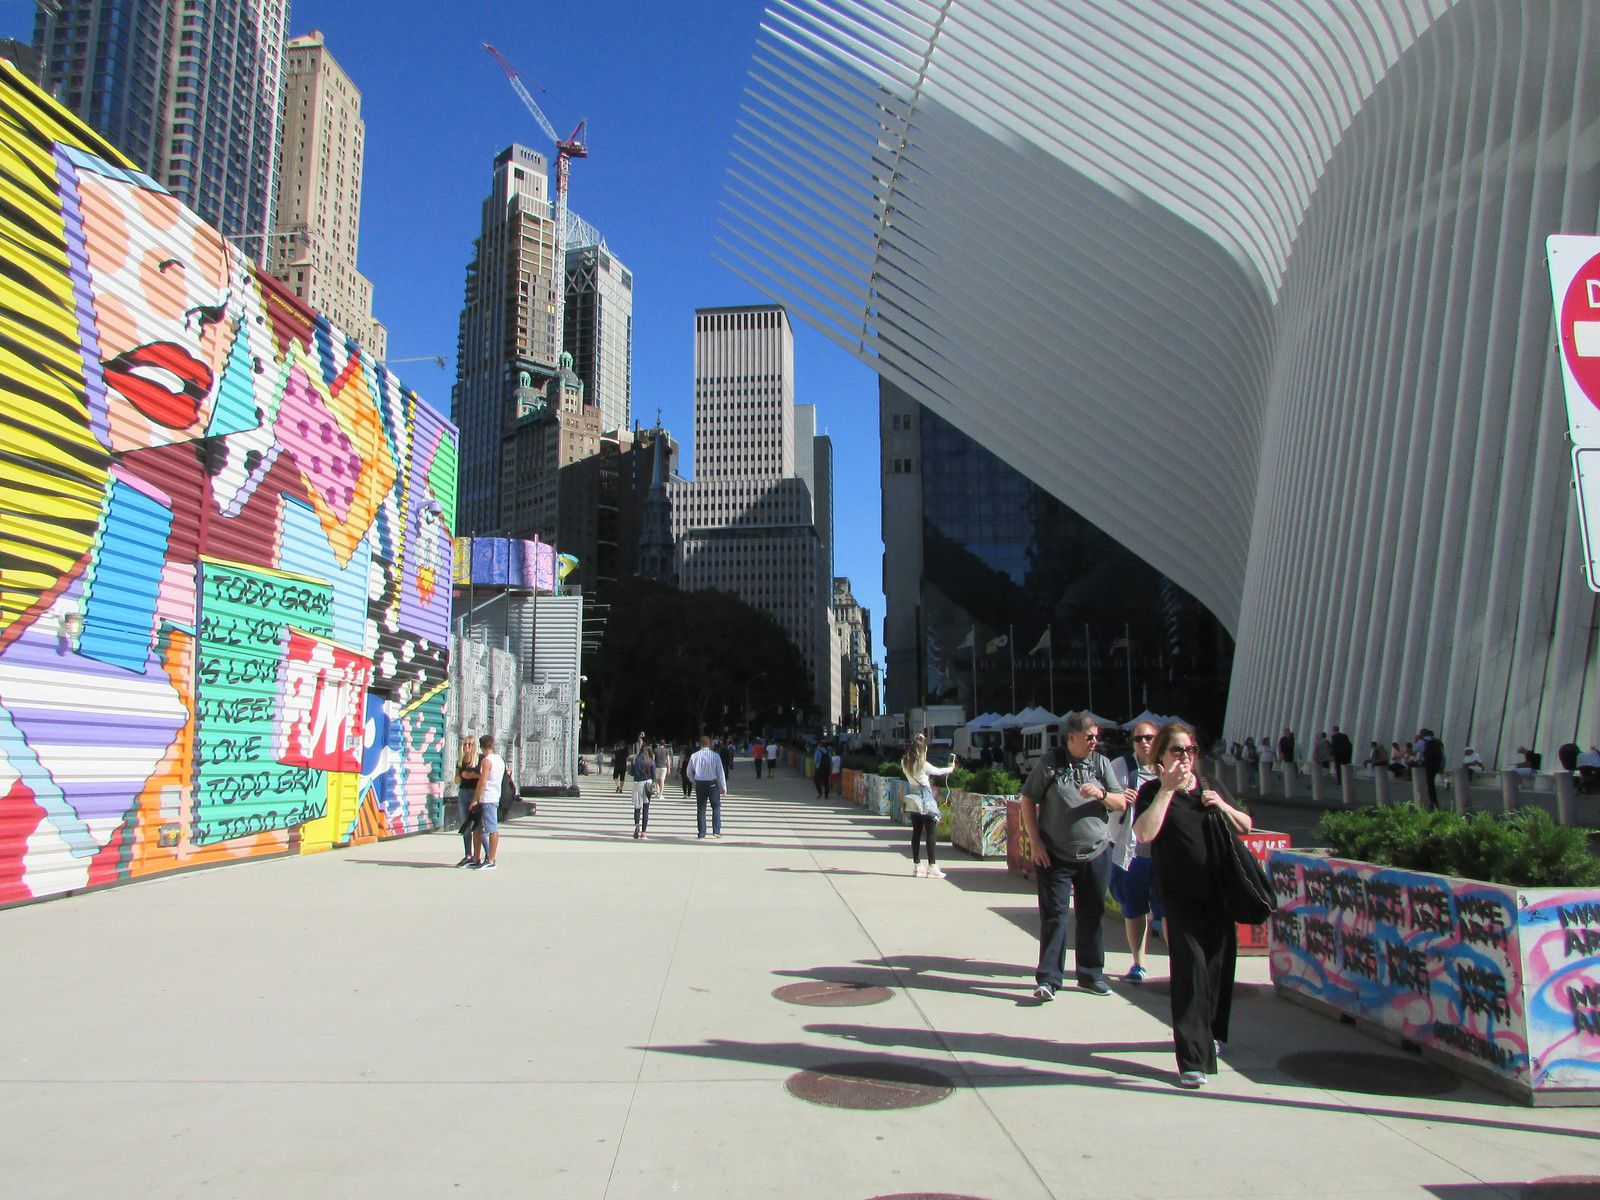 Le complexe commercial du World Trade Center.